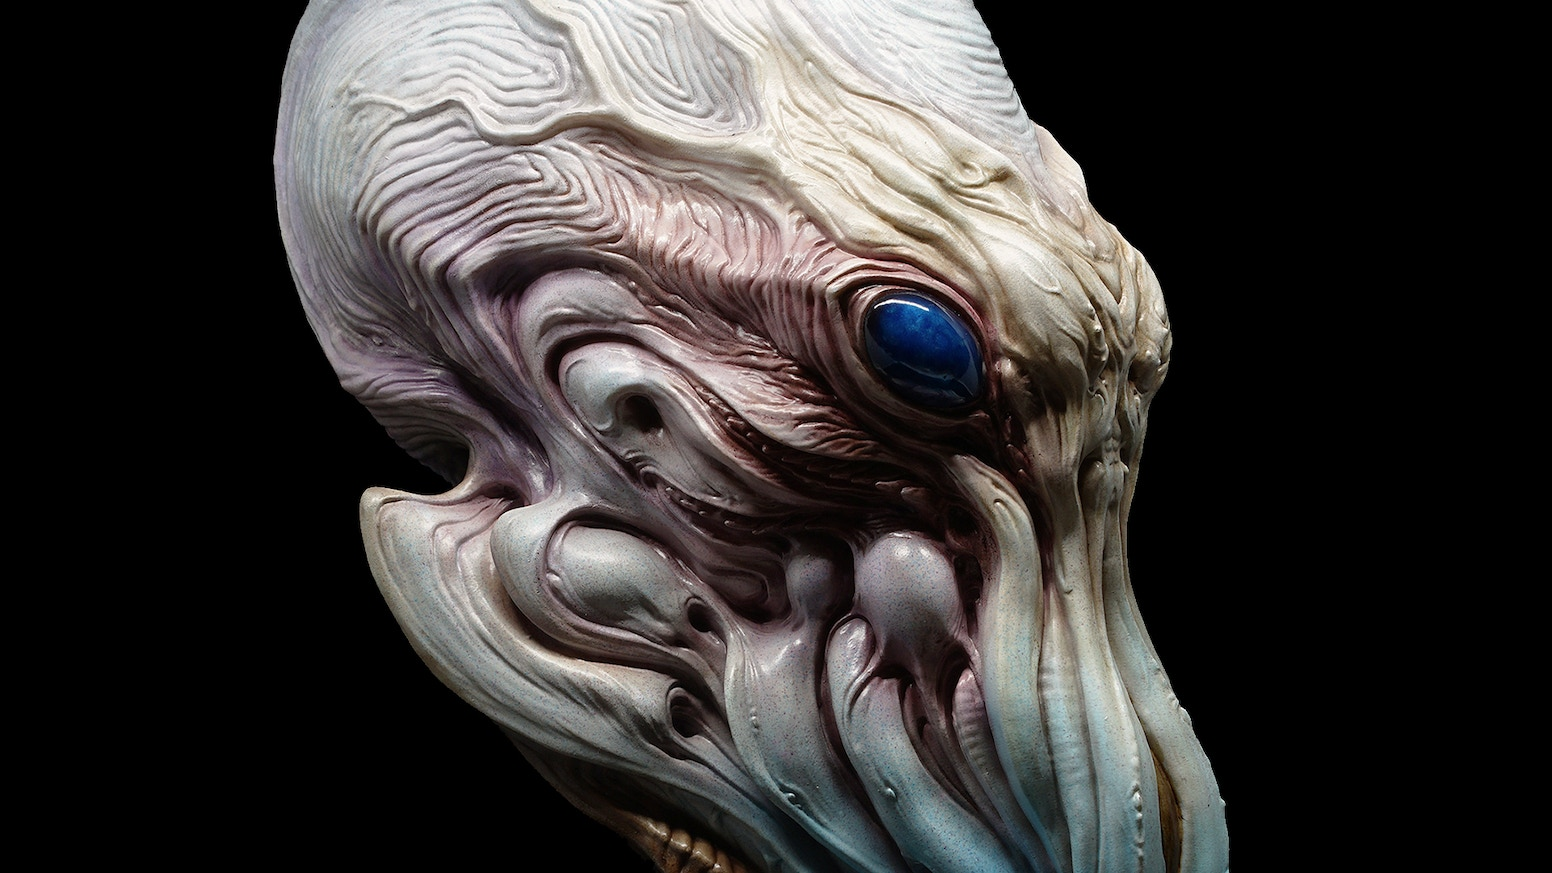 Reimagination of Cthulhu presented as a painted sculpture by artist Dominic Qwek